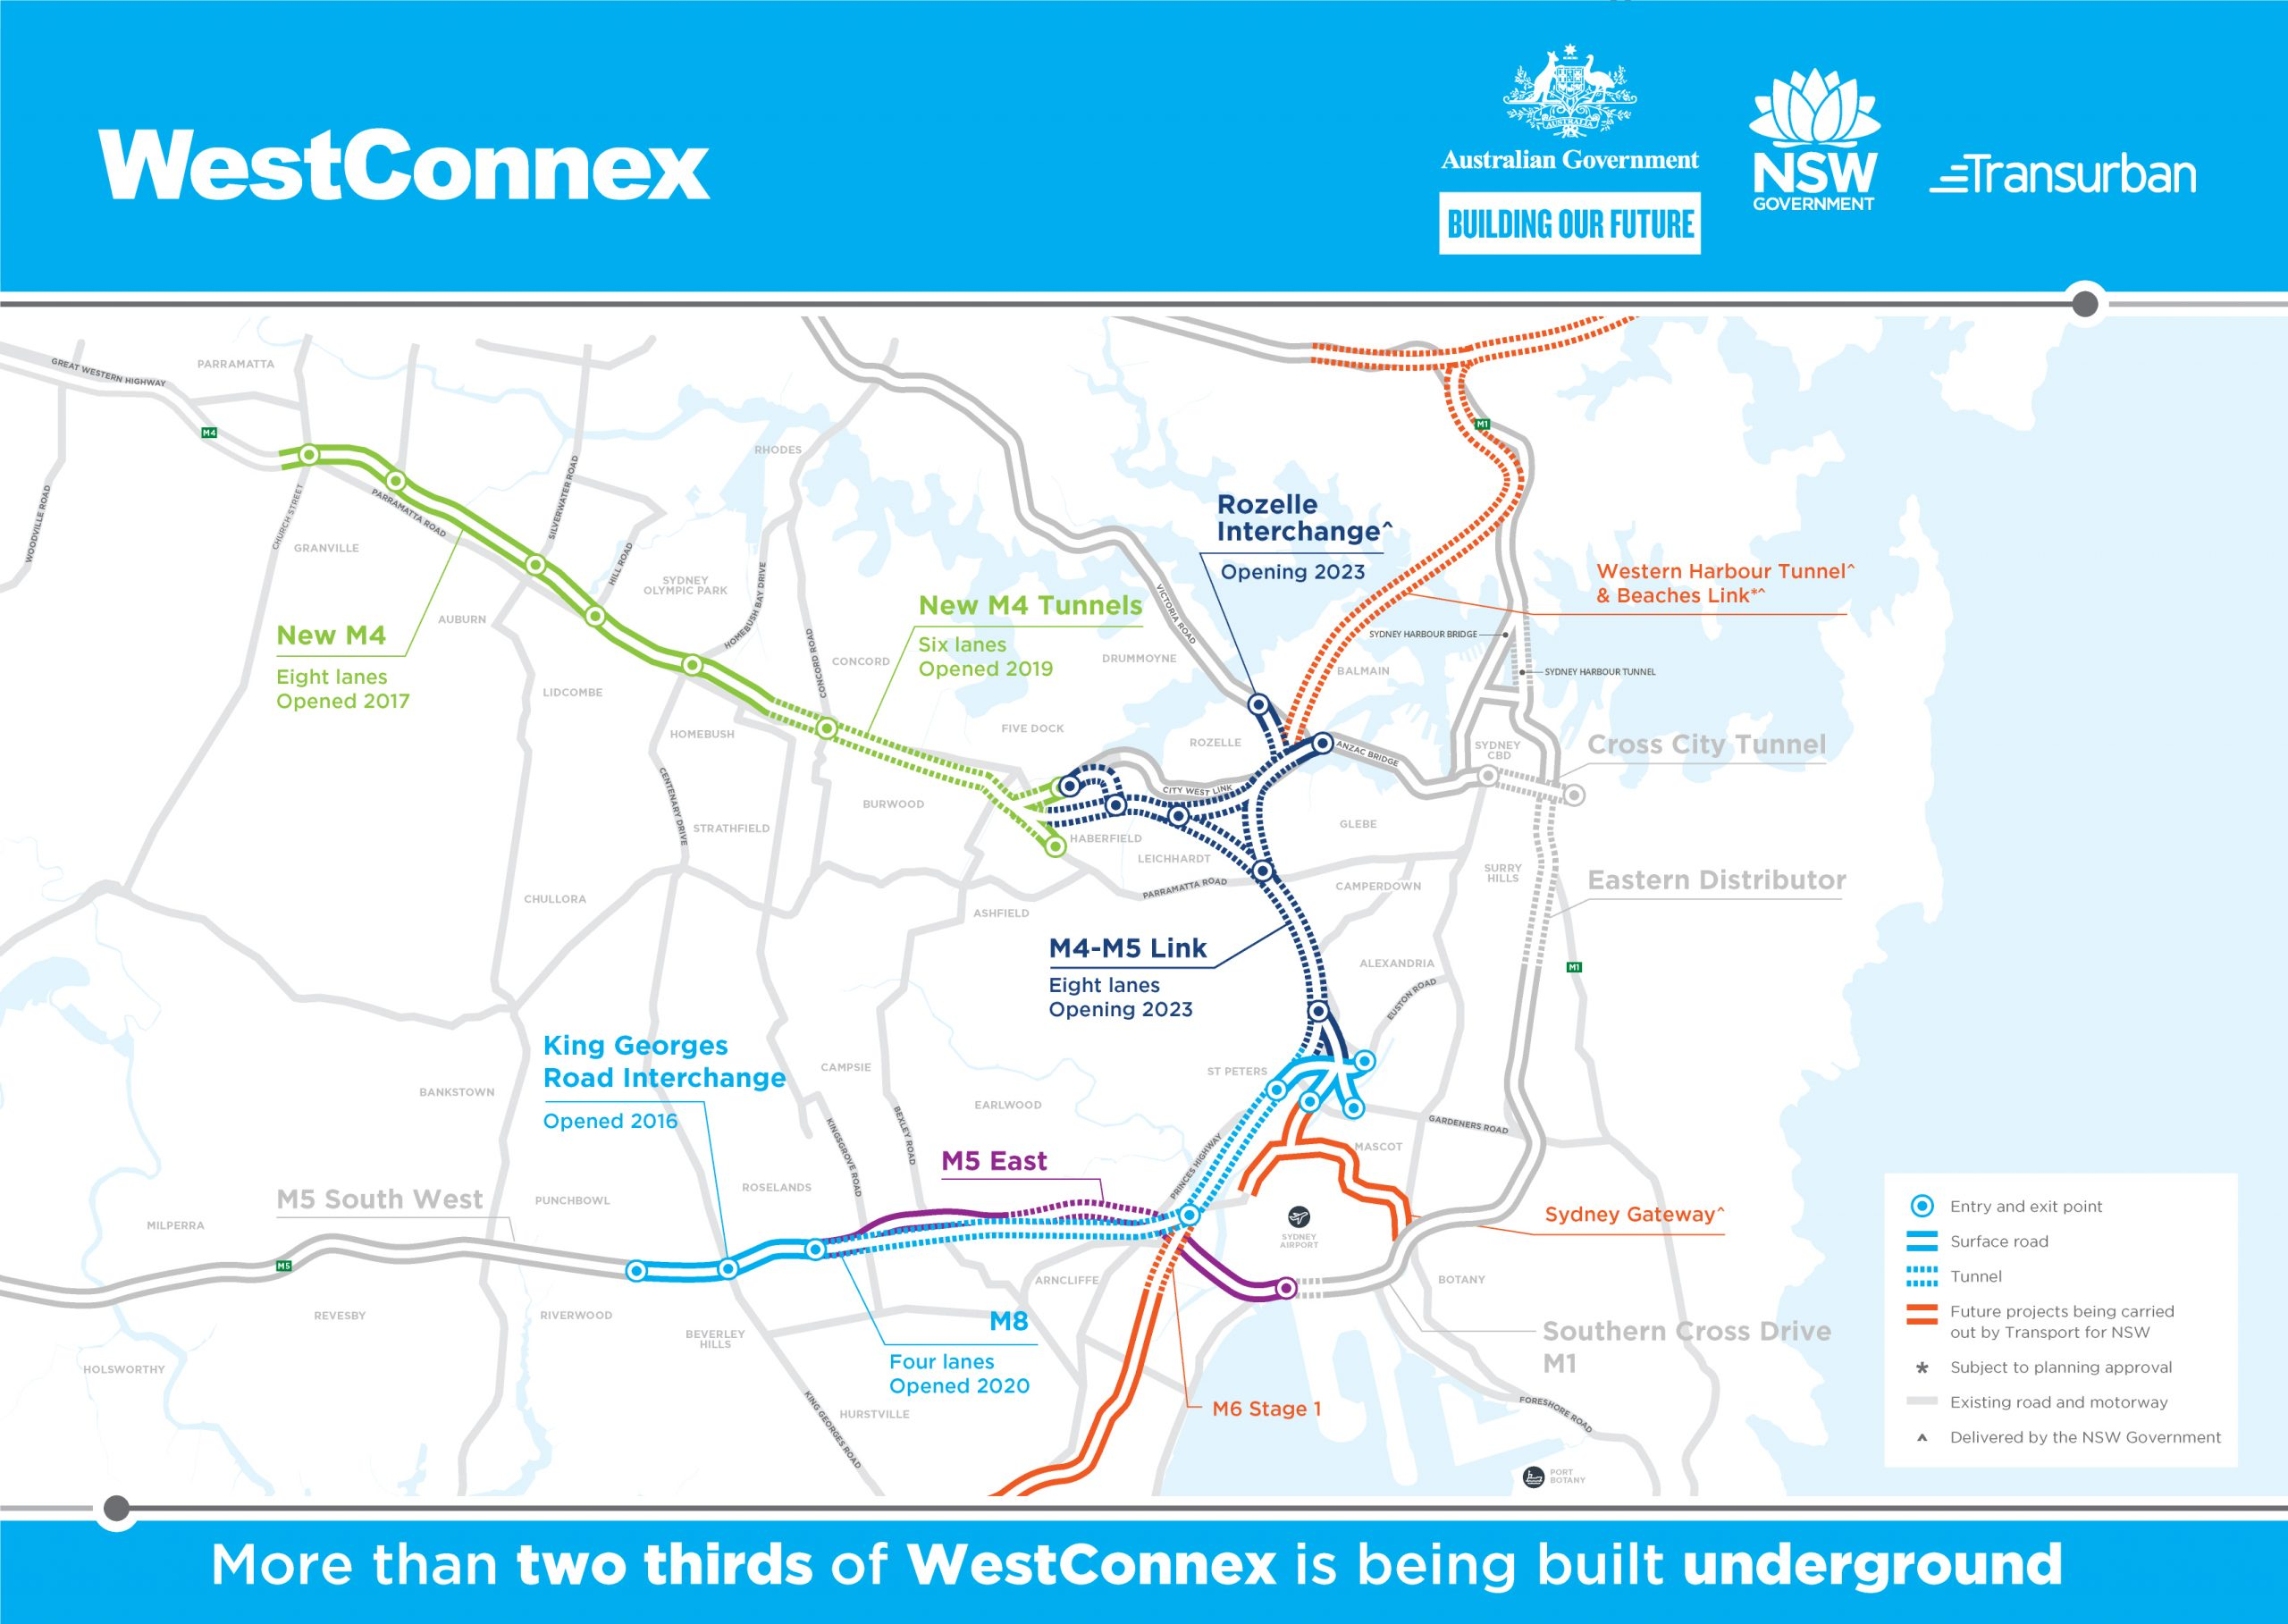 Fulton Hogan & Egis awarded operation & maintenance services for Stage 3 of Australia's largest road infrastructure project, WestConnex